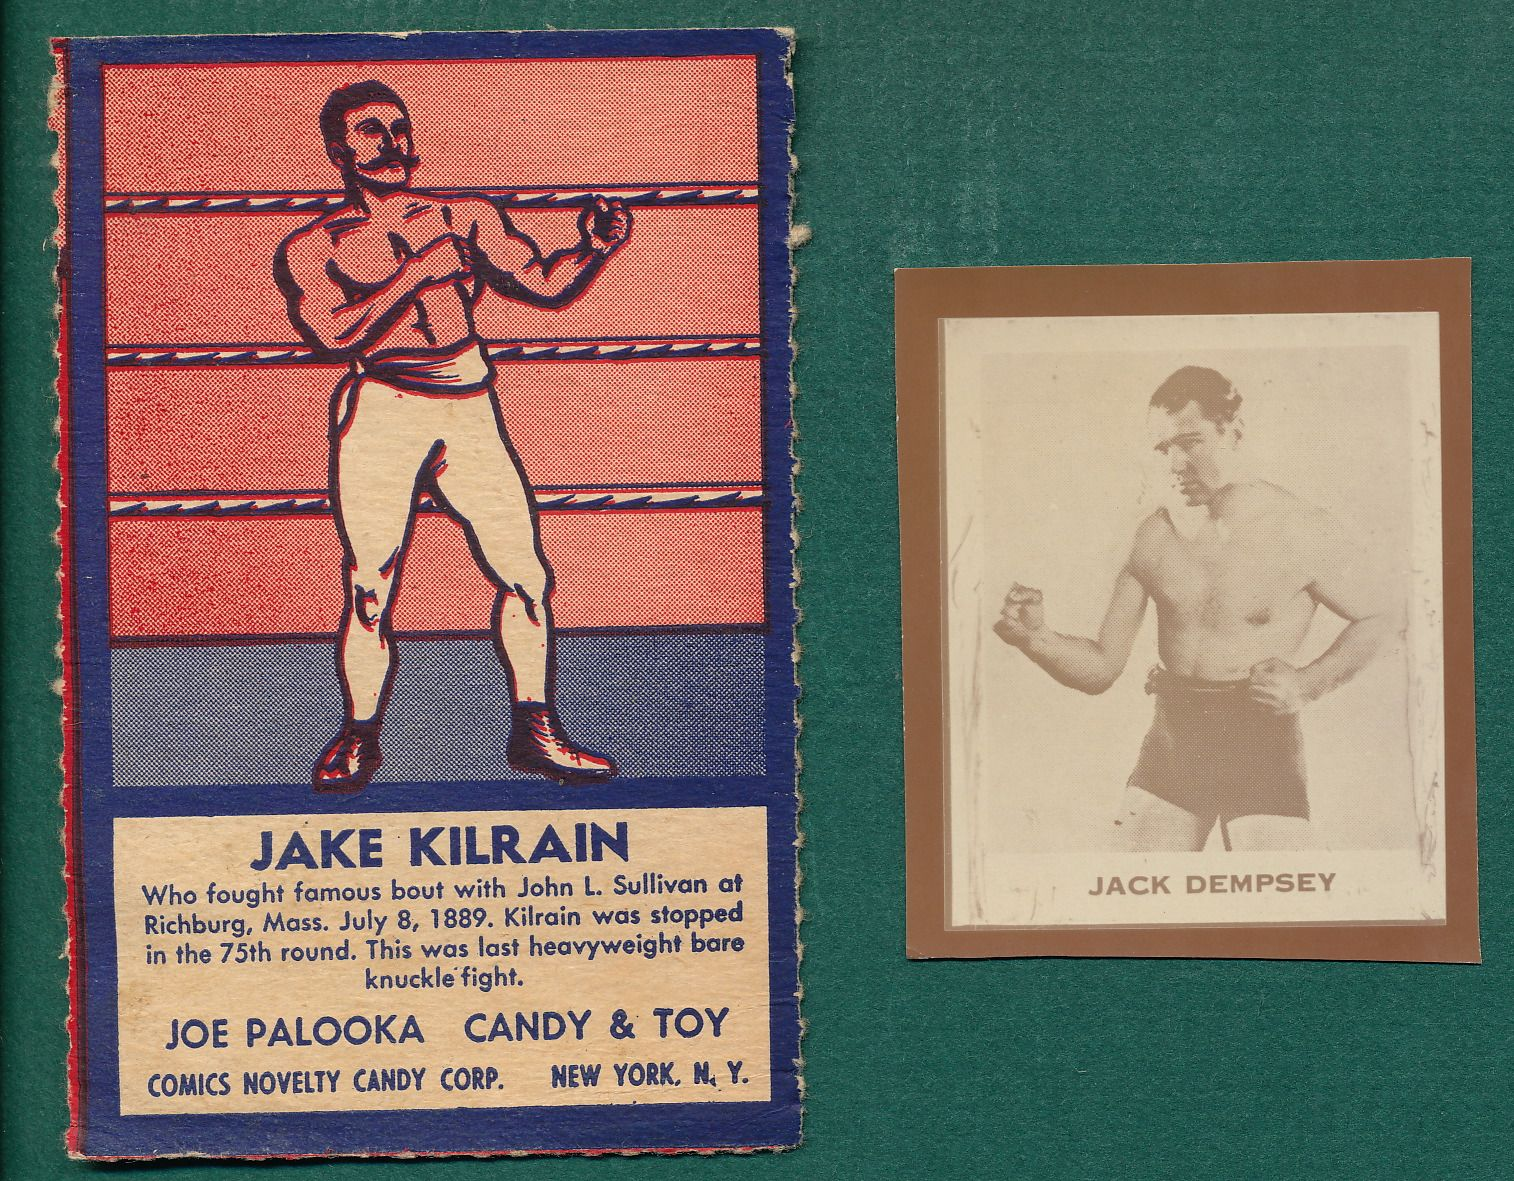 lot detail 1930s boxing ray o print jack dempsey u0026 1950s jake